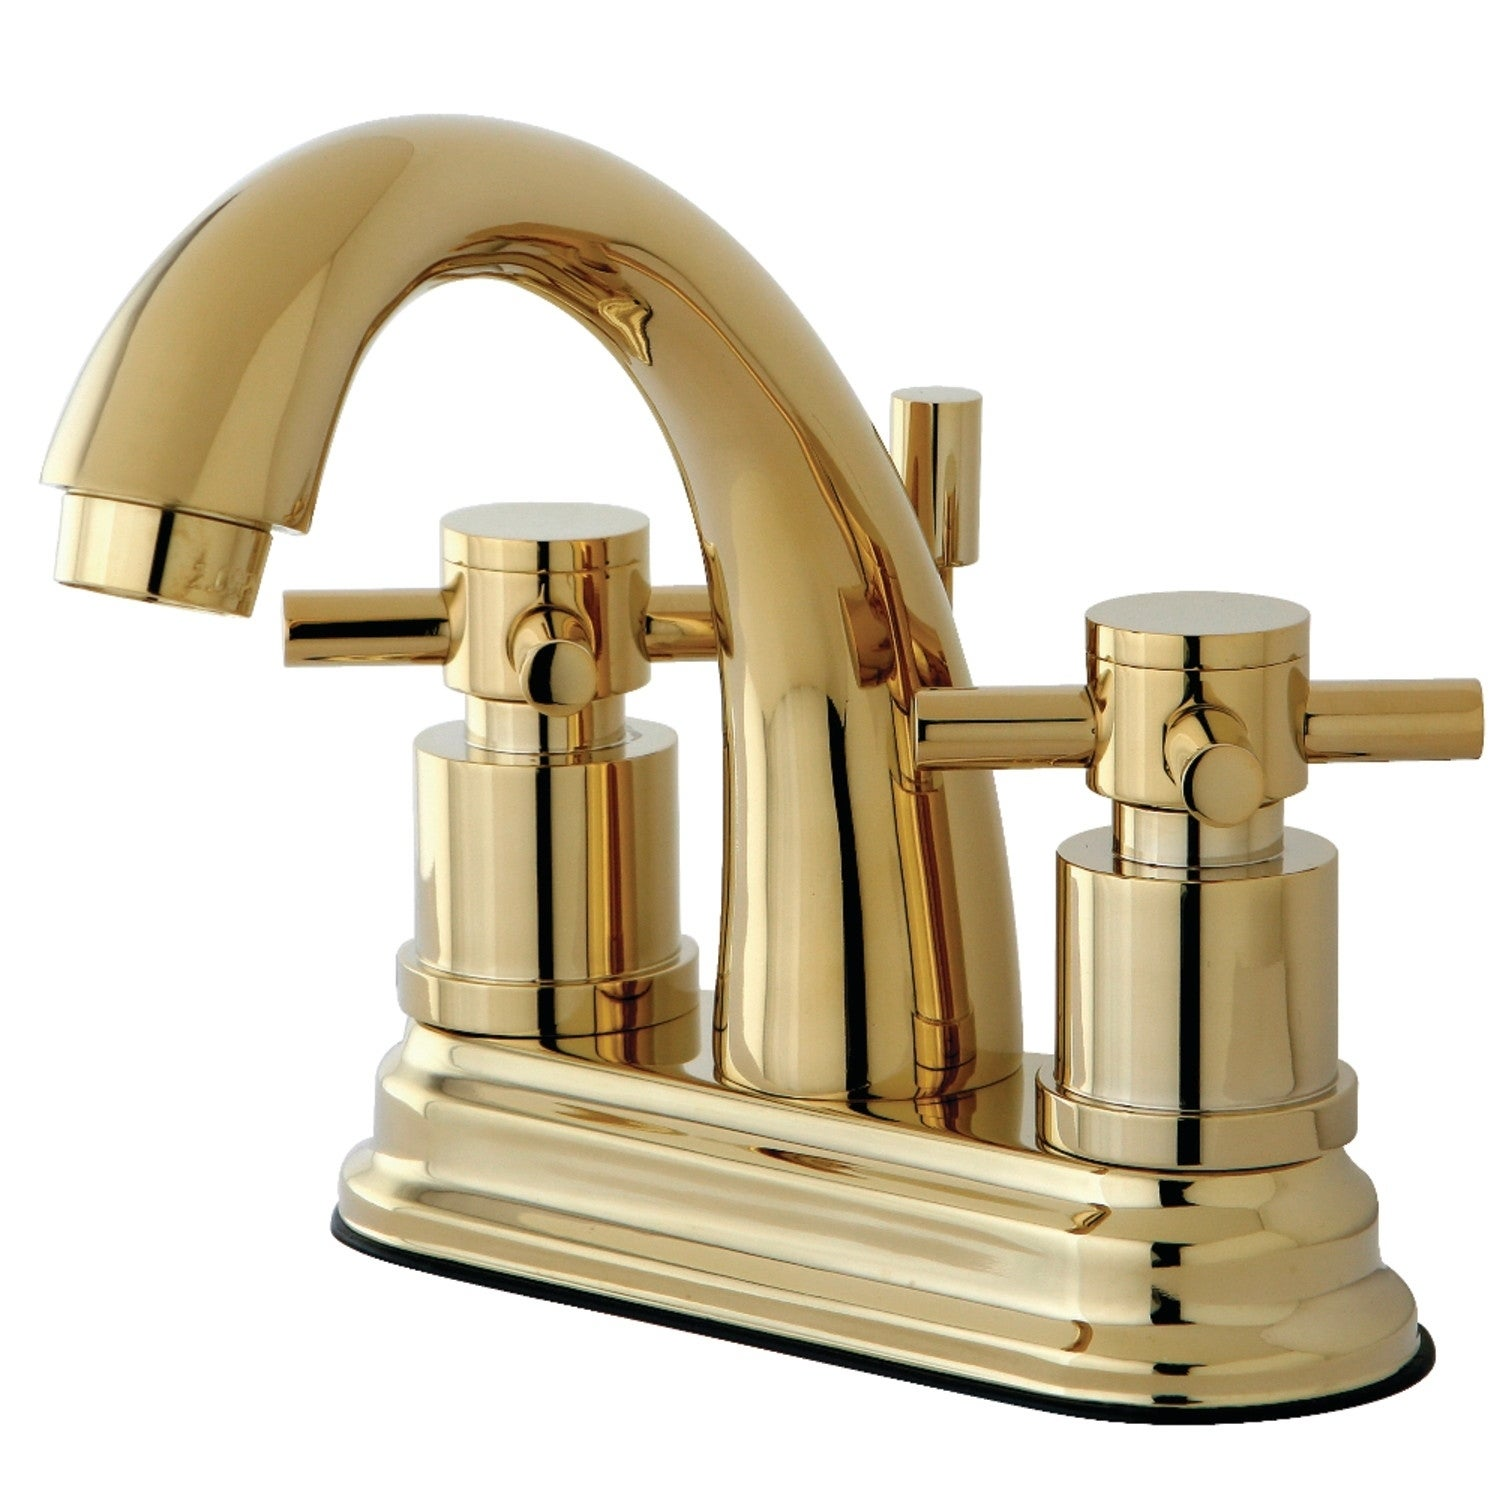 Concord 4 Inch Centerset Bathroom Faucet In Polished Brass Overstock 30902914